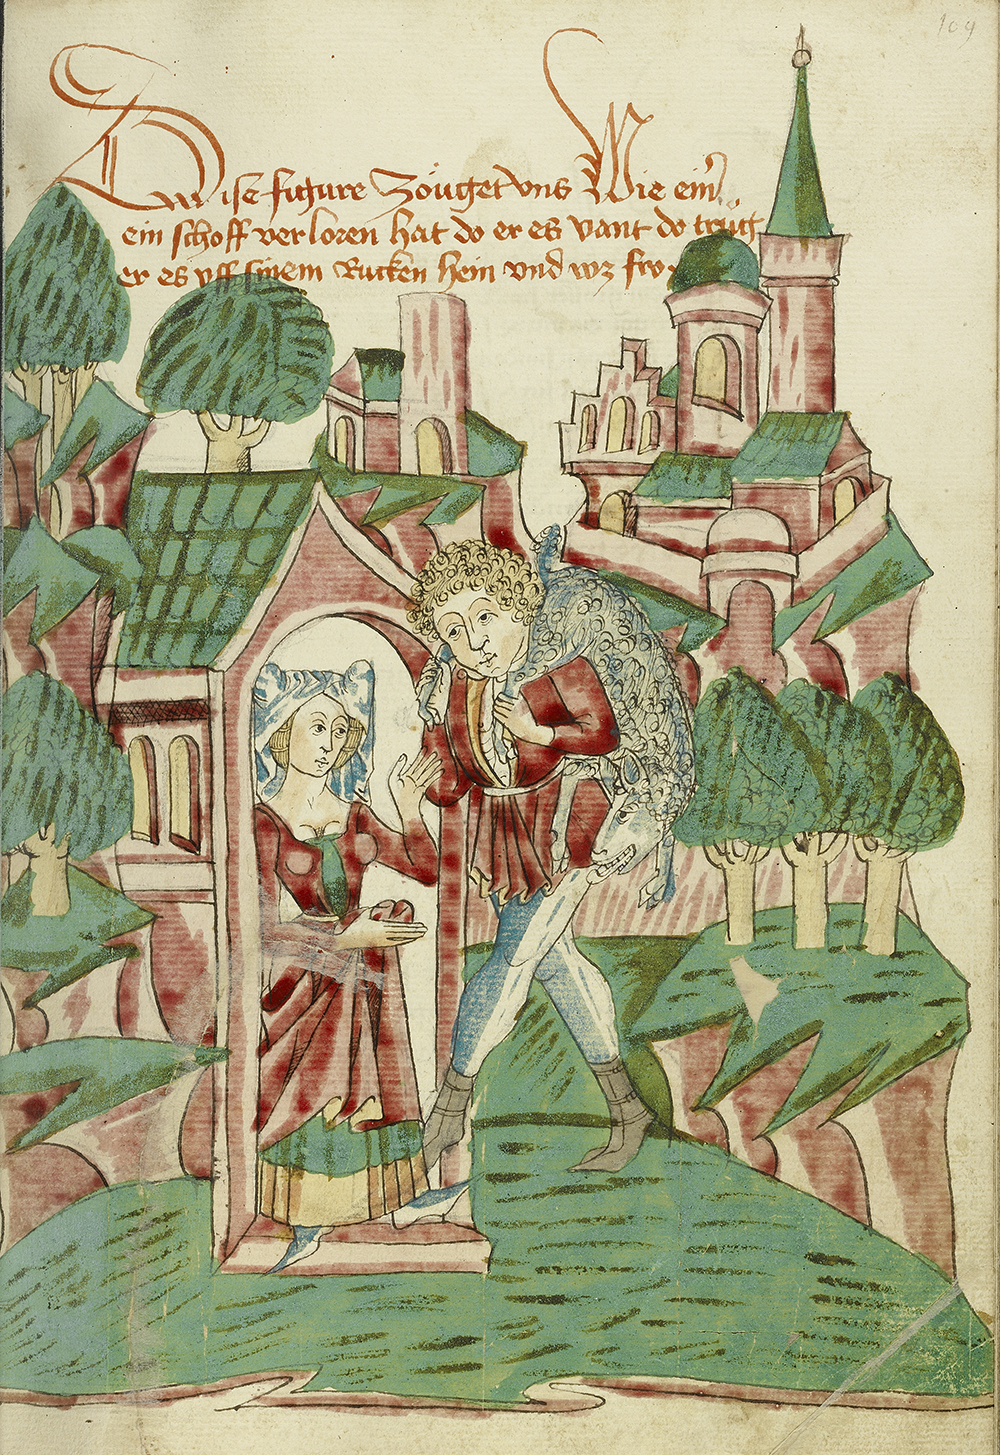 Shepherd Returning with Lost Sheep, from the Workshop of Diebold Lauber, 1469.